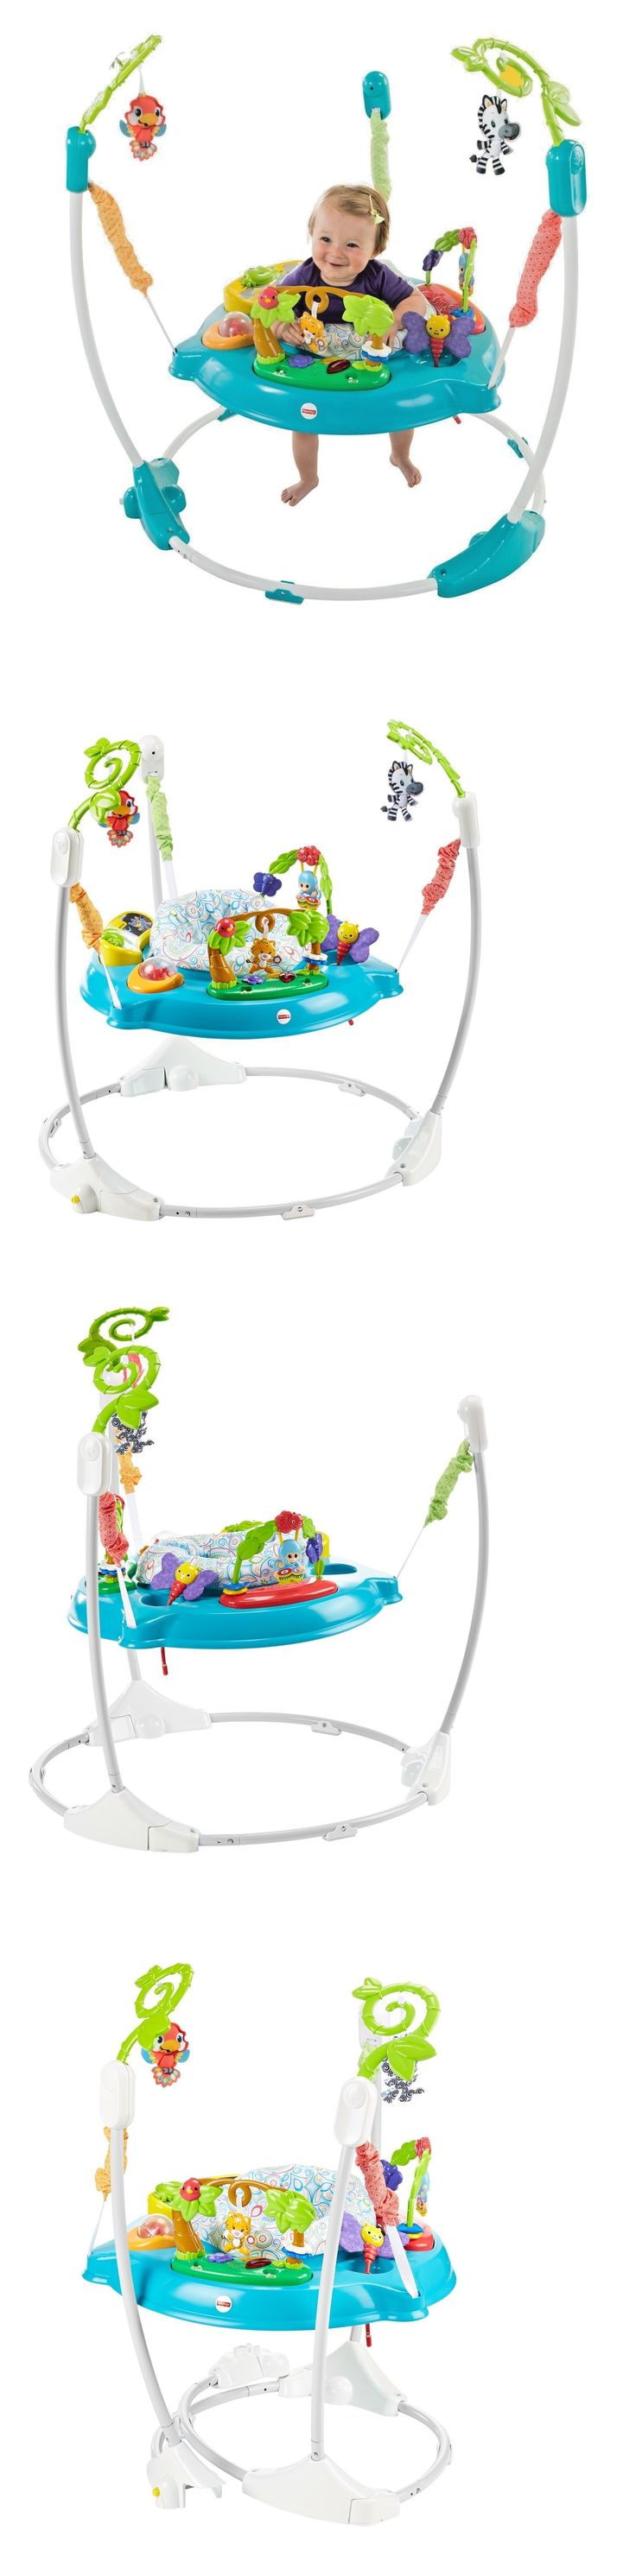 Baby Jumping Exercisers 117032: Fisher Price Shakira Musical Friends Jumperoo Baby Activity Bouncer Seat Jumper -> BUY IT NOW ONLY: $96.7 on eBay!